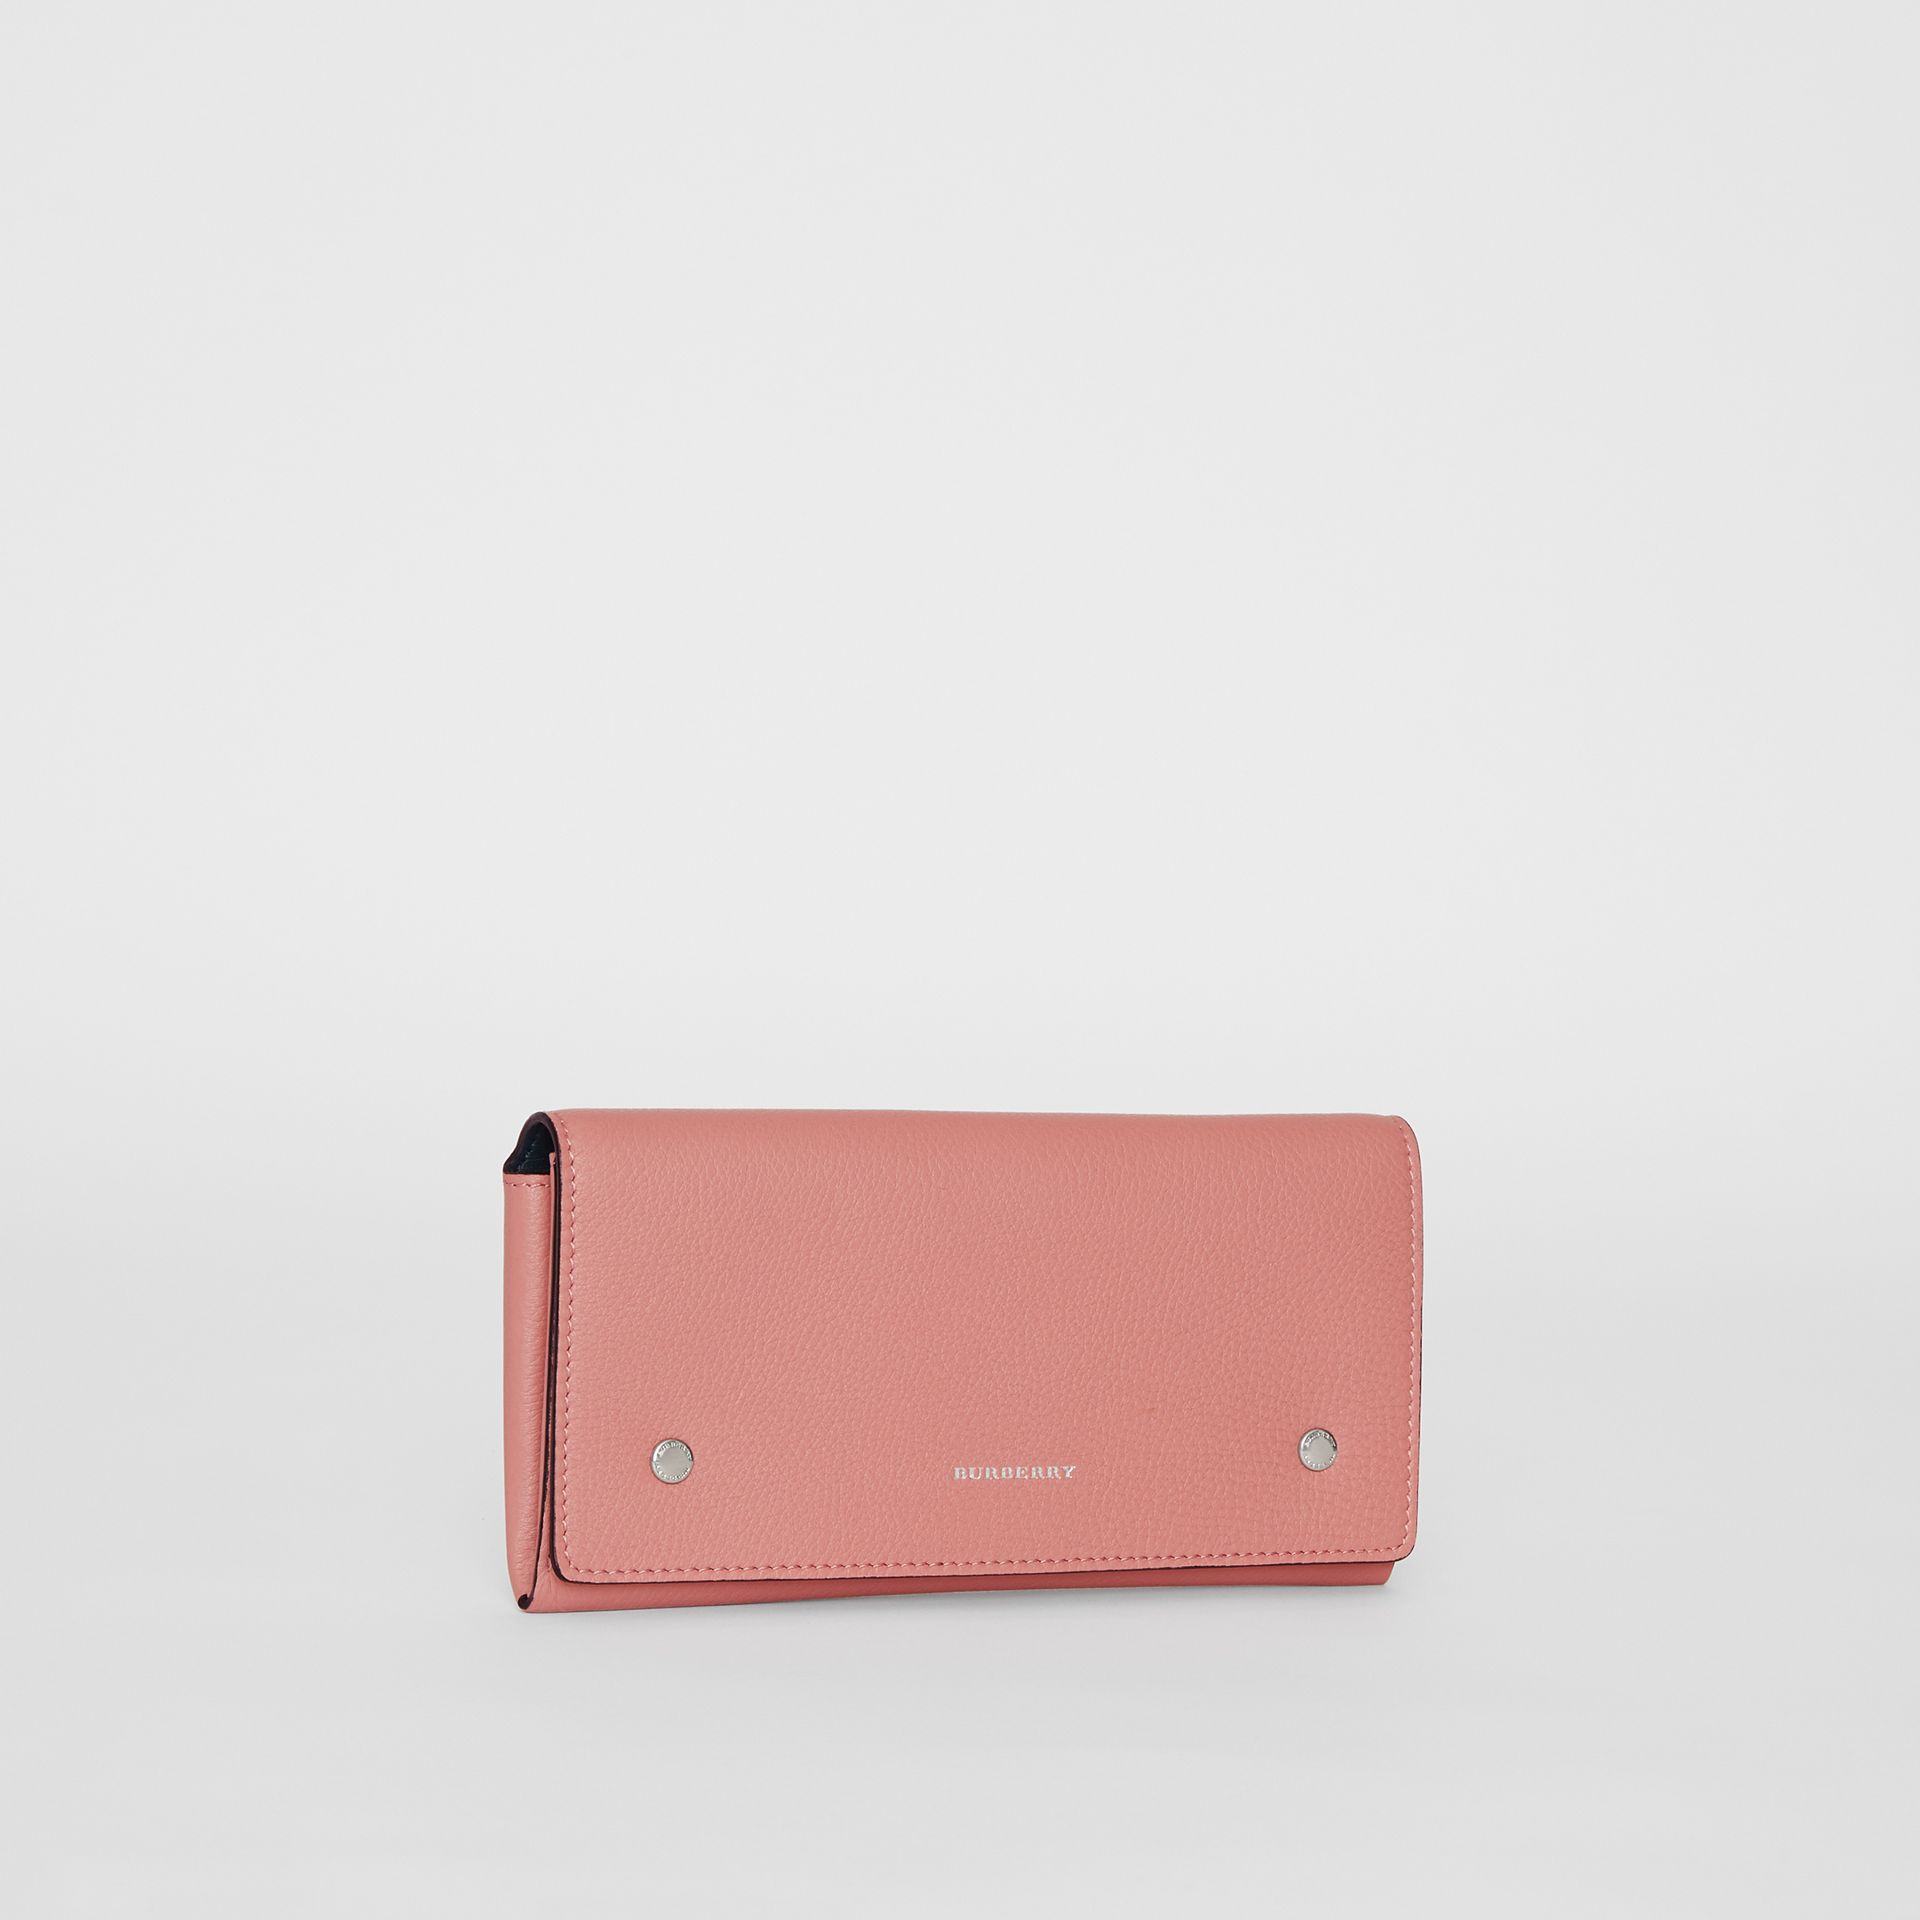 Two-tone Leather Continental Wallet in Dusty Rose - Women | Burberry United Kingdom - gallery image 4